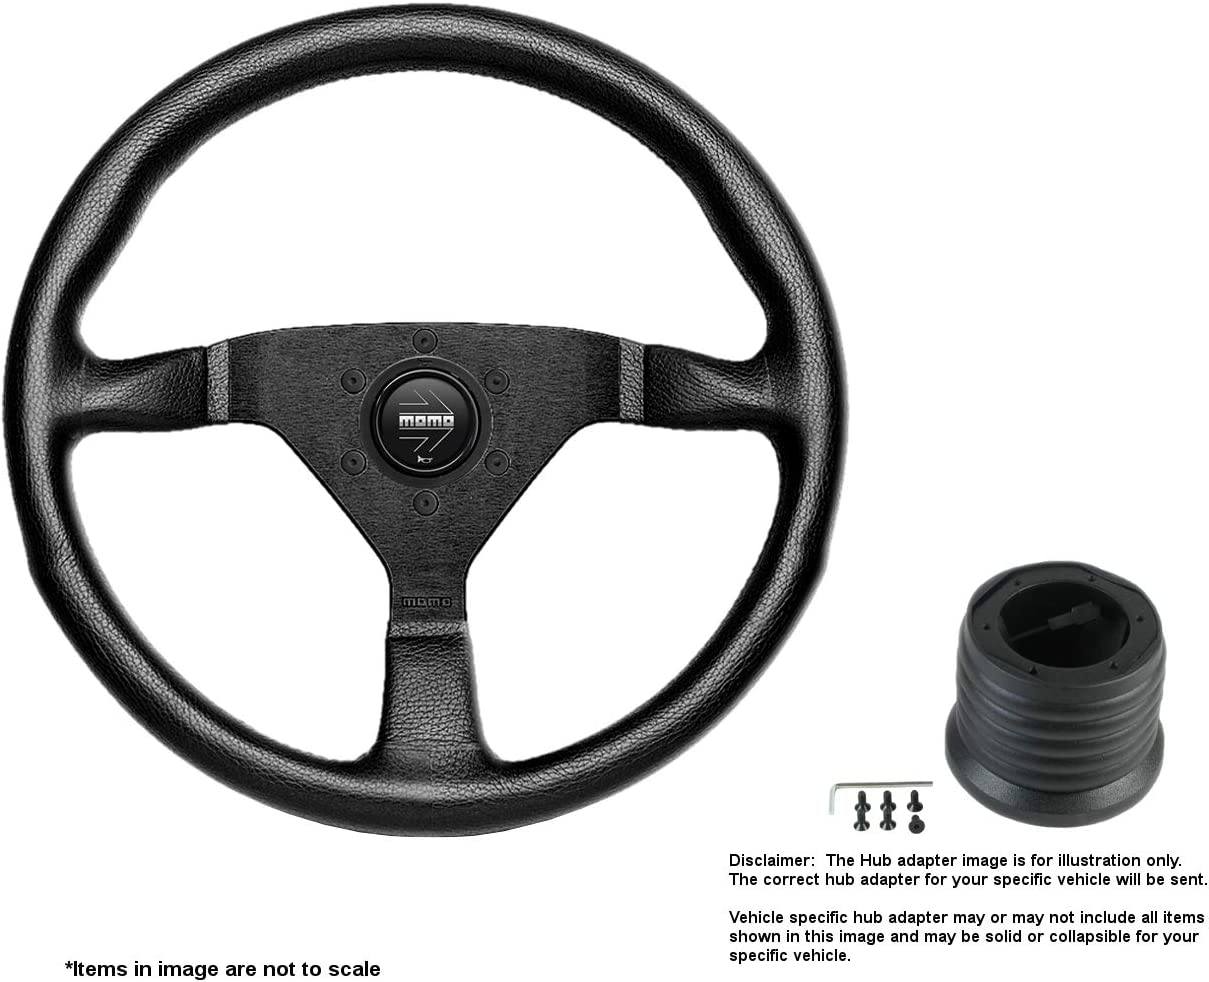 MOMO Montecarlo 350mm 13.78 Limited time sale Inches Br Wheel w Leather Steering Omaha Mall